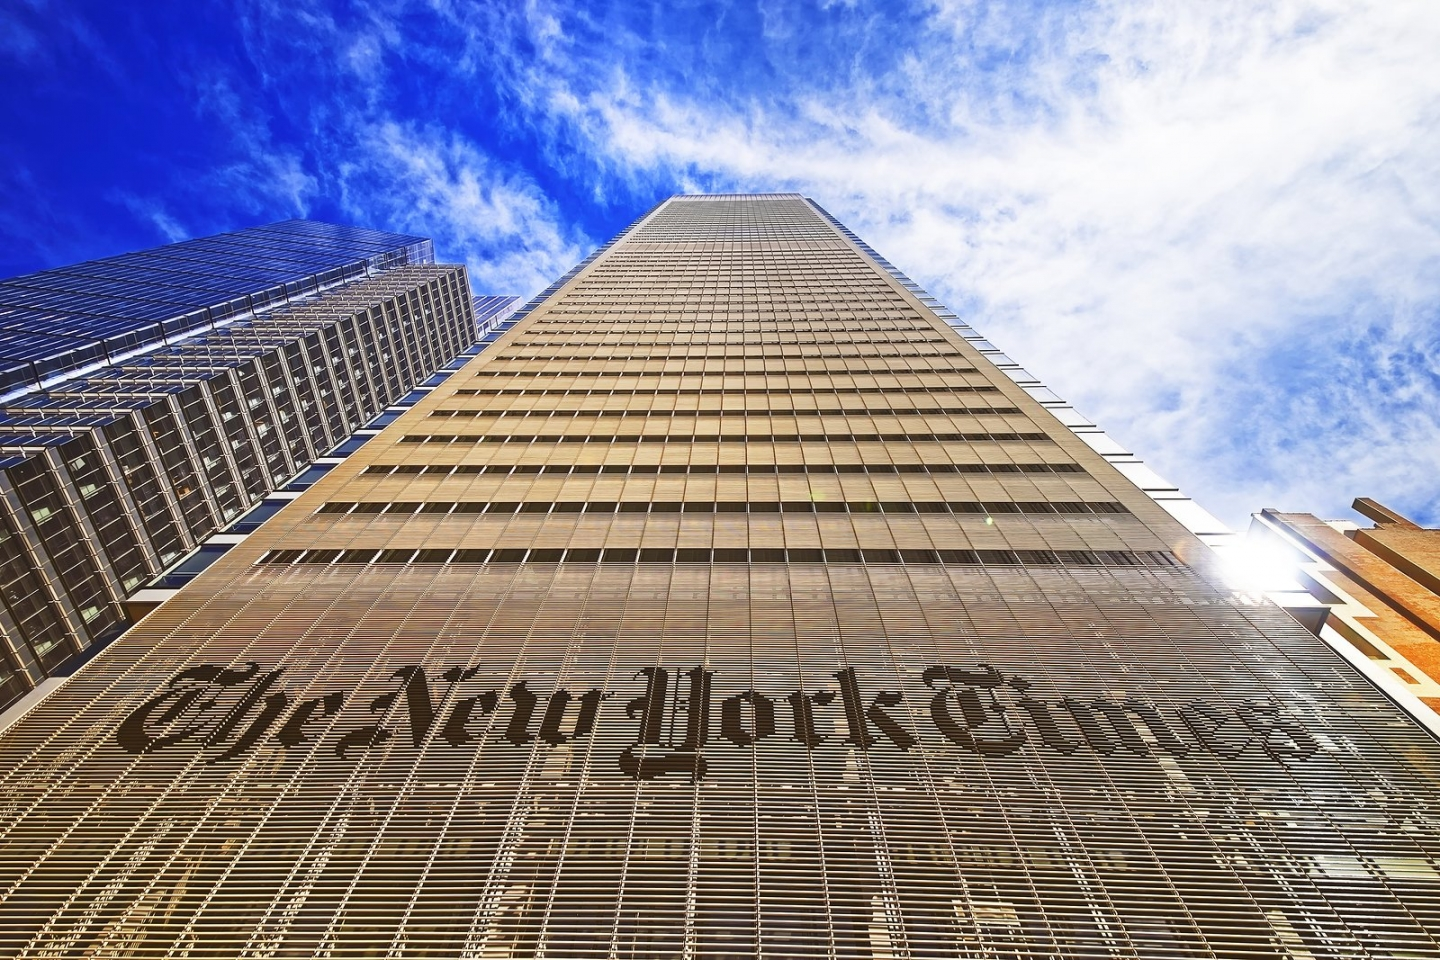 Keeping the Gray Lady Spry: How The New York Times Is Going Digital‑First